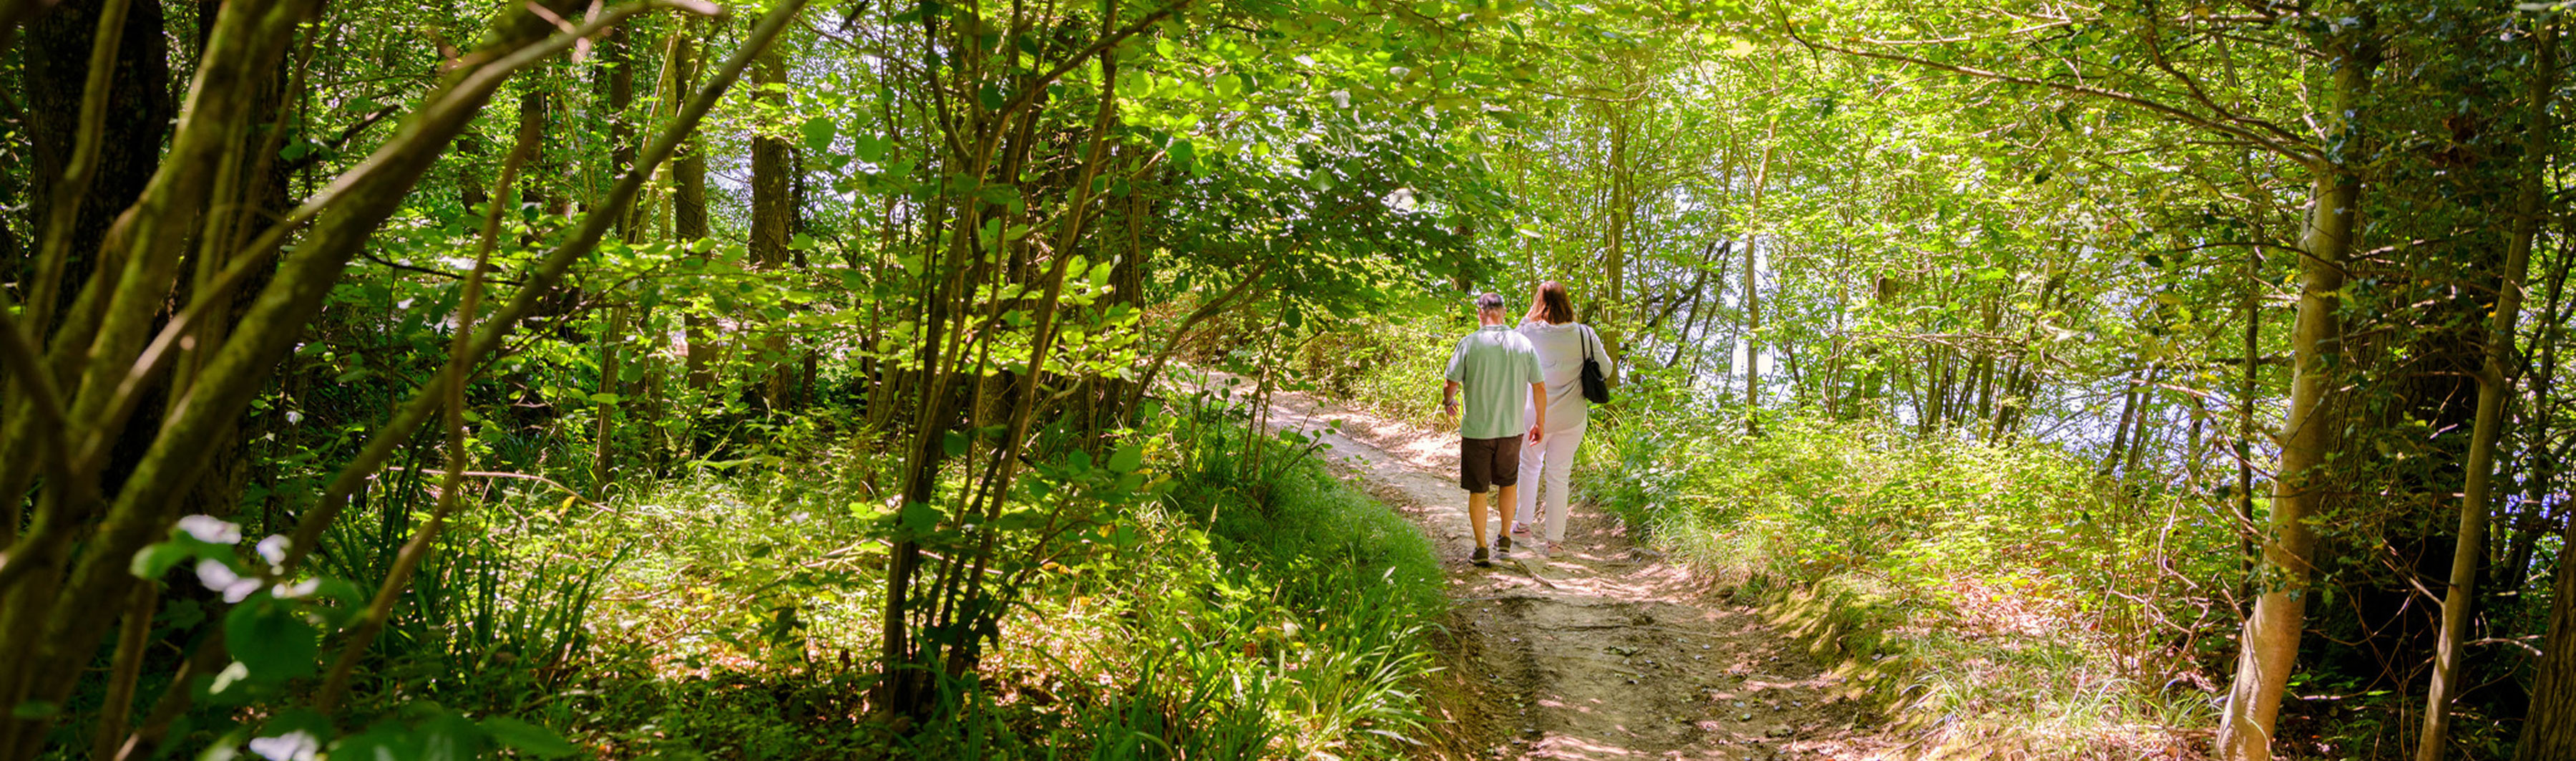 Two people walking in the Wakehurst woodland